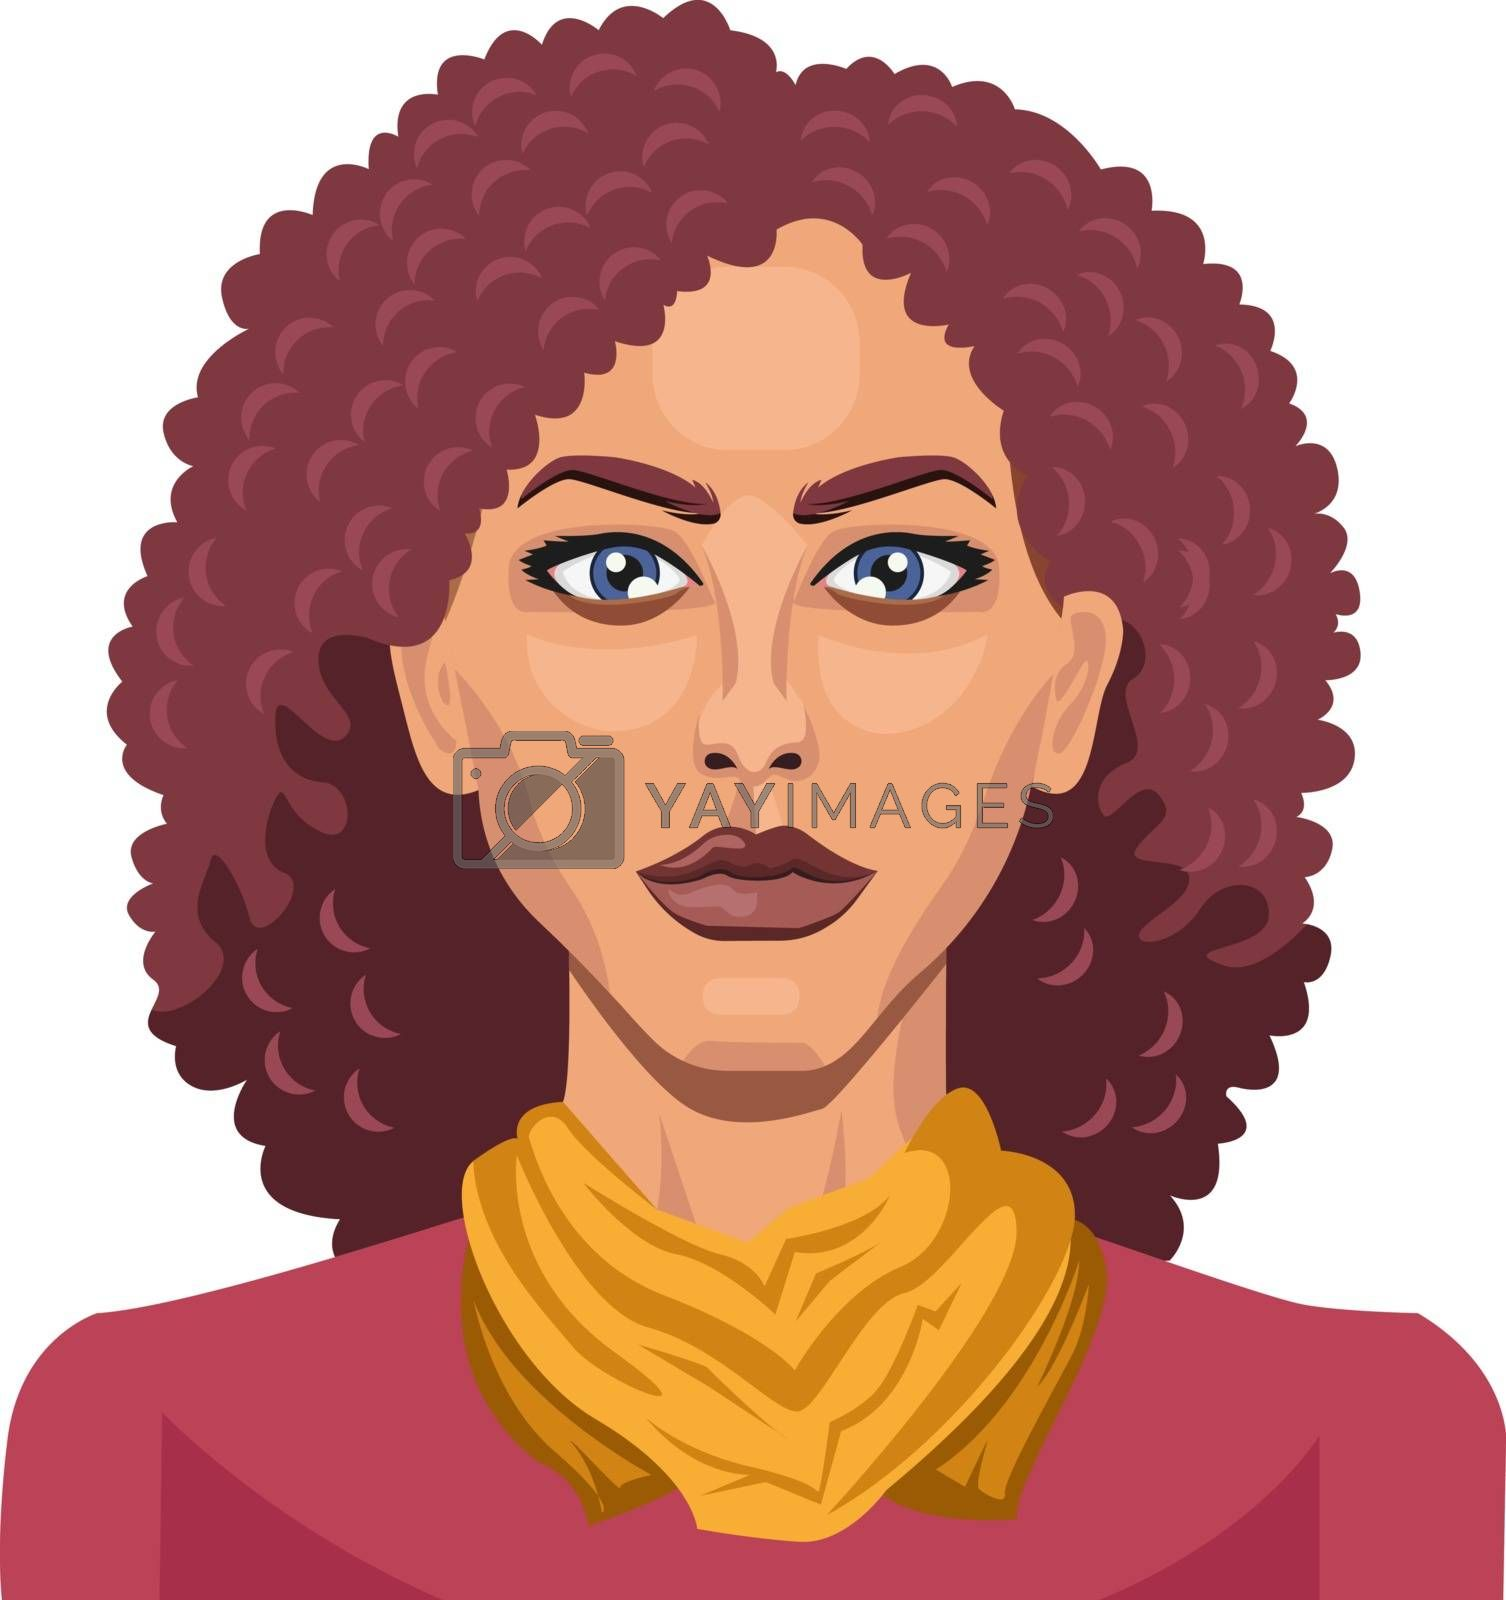 Royalty free image of Pretty girl with curly red hair illustration vector on white bac by Morphart